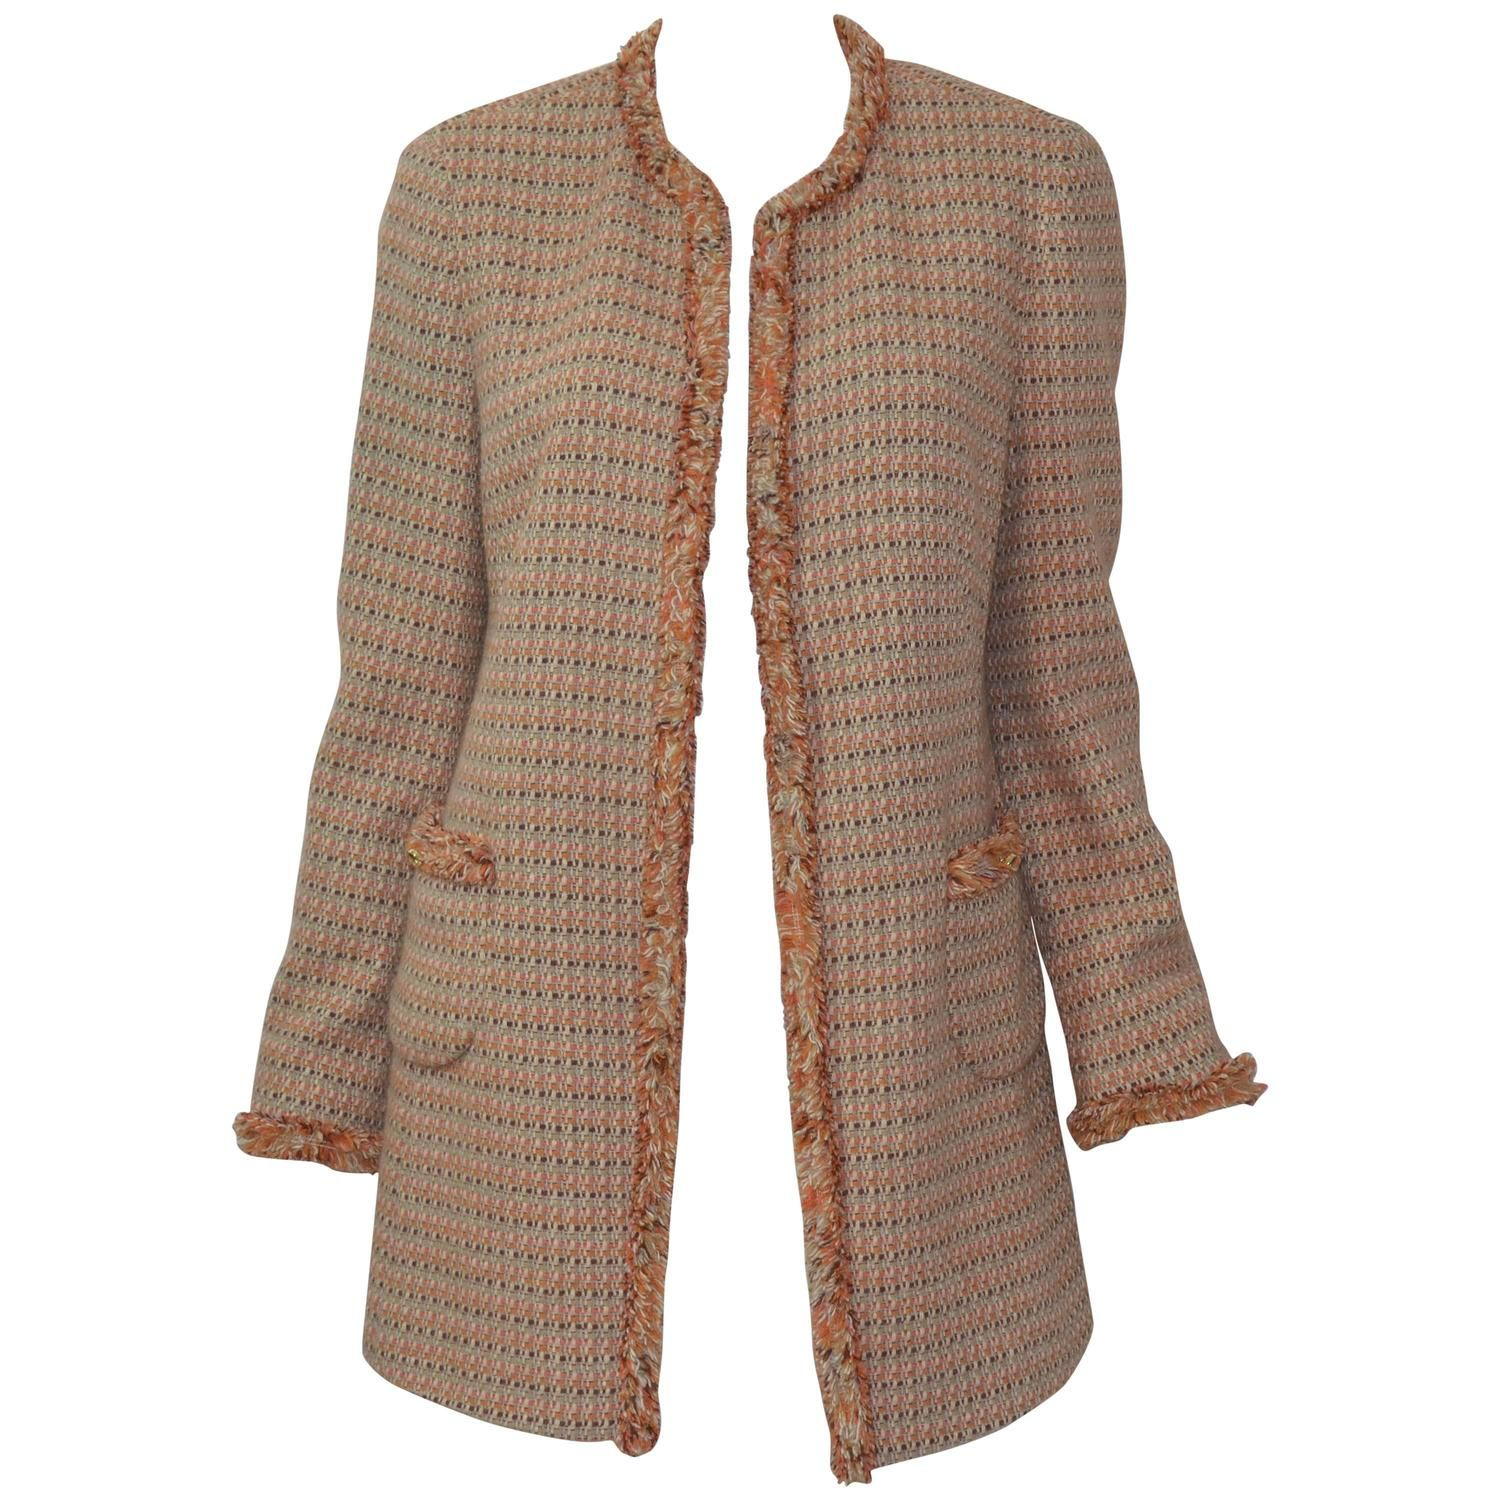 c4d065fdcce Chanel Classic Tweed Knit Fringe Jacket